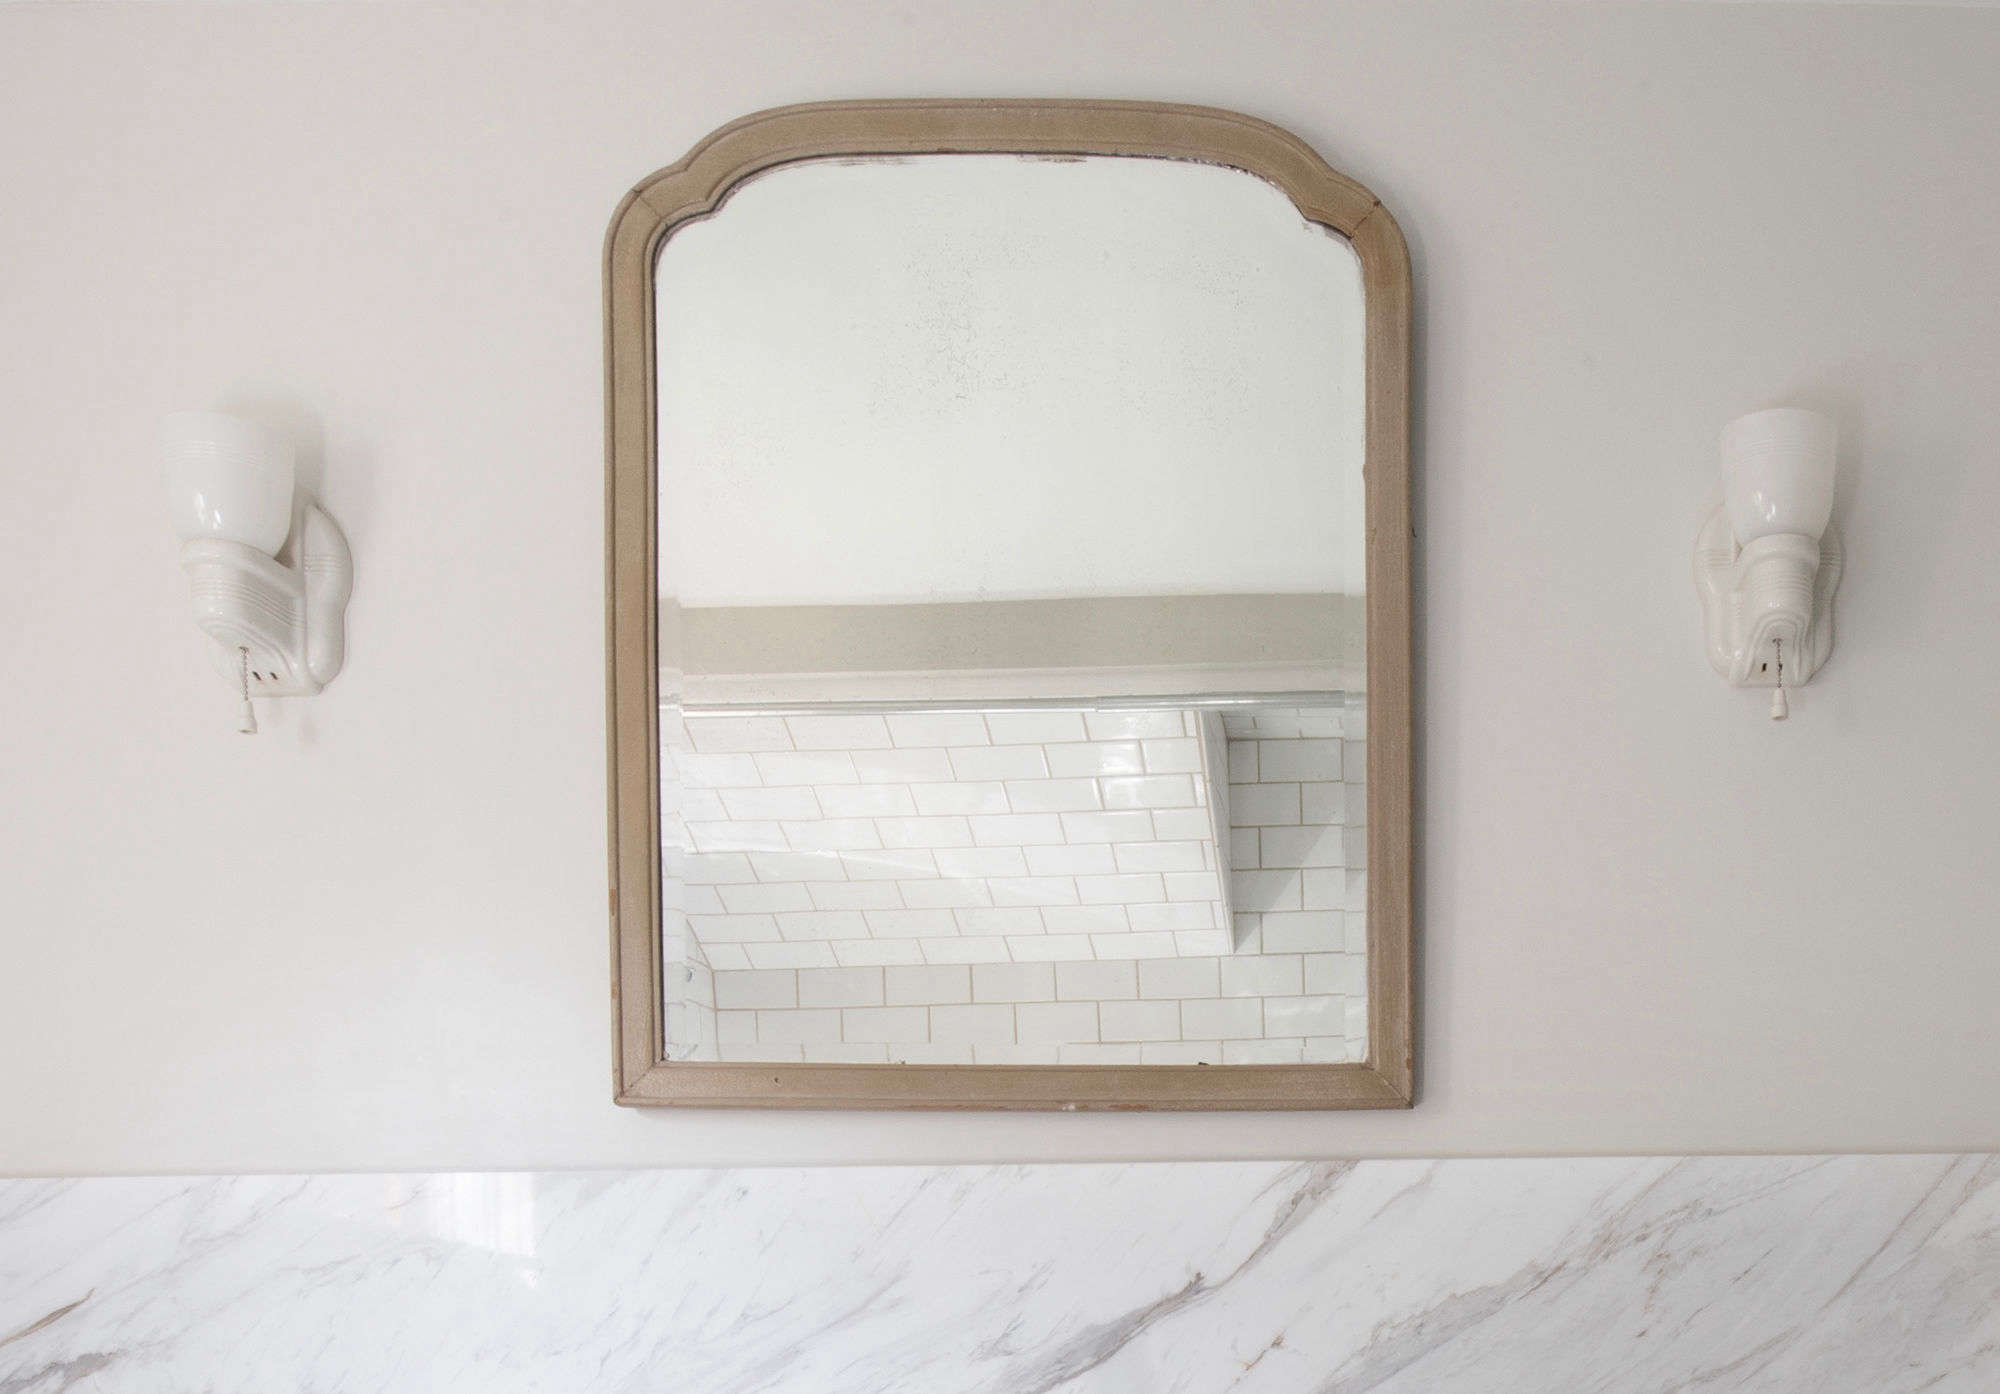 The wood-framed mirror was one of several found in the existing farmhouse; its mateis used in one of the bedrooms. It's flanked by two vintage porcelain sconces with glass shades, sourced and rewired fromSeattle Building Salvage.